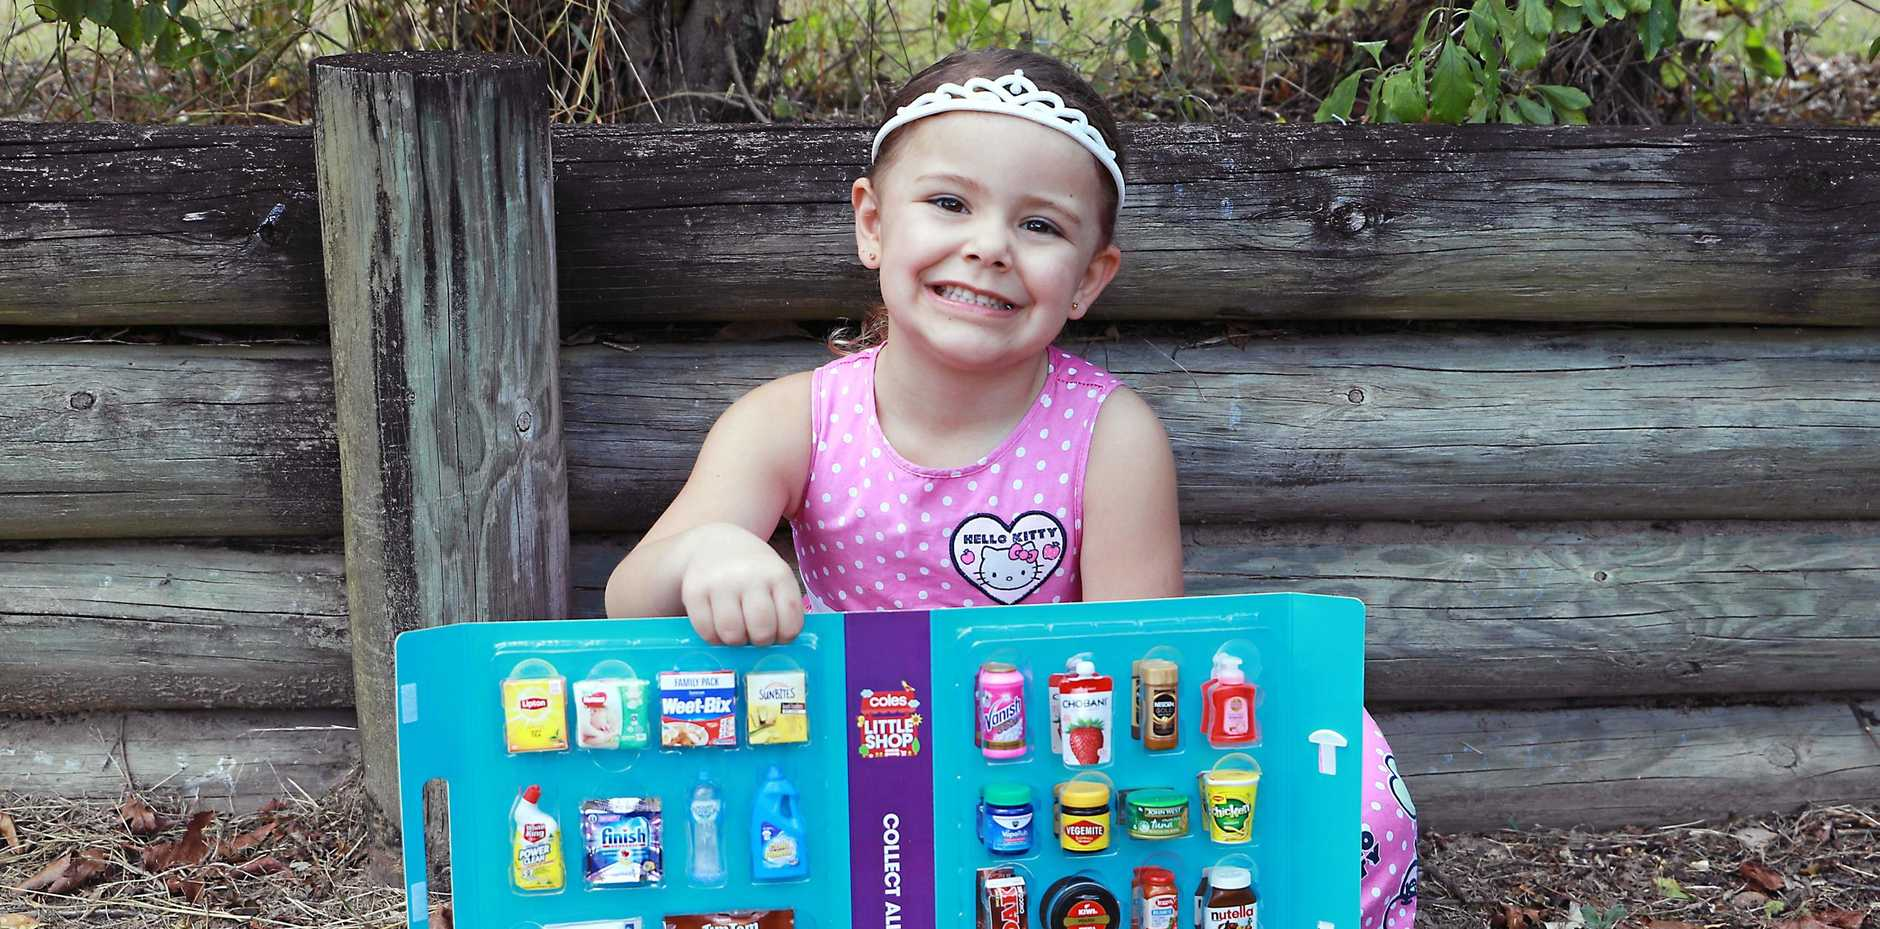 Hayley Hughes with her treasured Coles Little Shop collection.